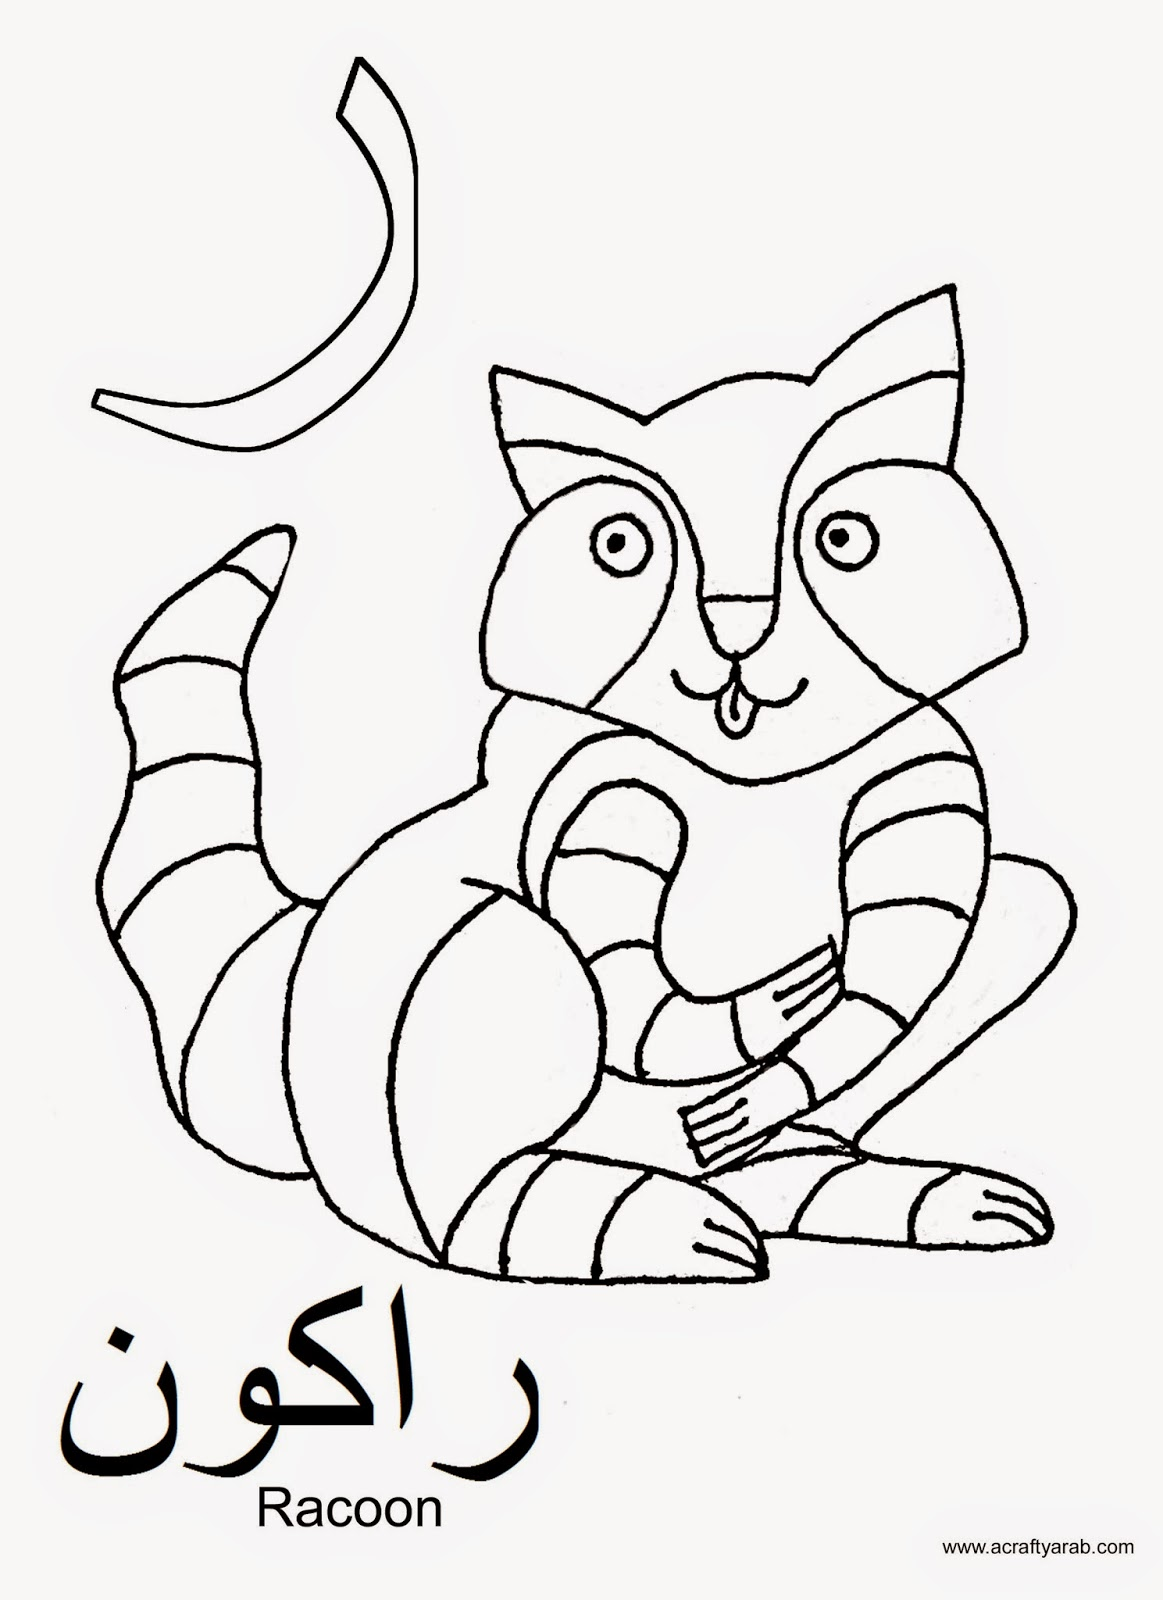 A Crafty Arab: Arabic Alphabet coloring pages...Ra is for ... A Coloring Page